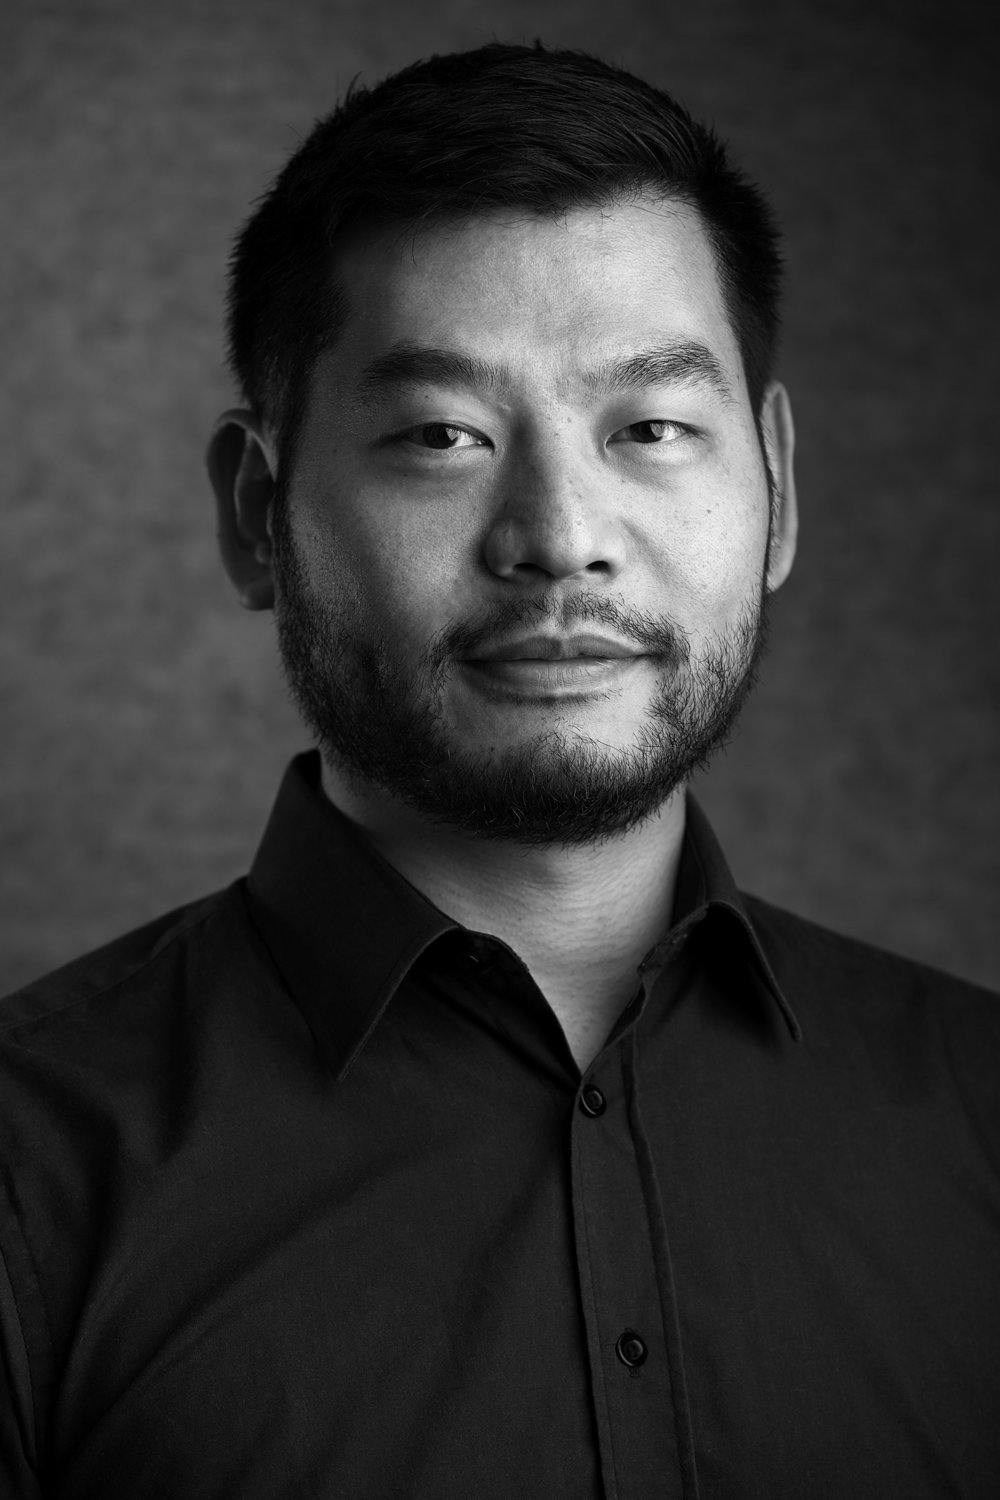 Yusuke Shiratori, Graduate Architect - B. Eng/Arch, M. ArchYusuke Shiratori is a Graduate of Architecture. Yusuke obtained a Bachelor of Engineering, majoring in Architecture while living in his homeland, Japan (Kogakuin University, Tokyo) and followed on to complete his Masters of Architecture through Deakin University.Prior to joining Luke Fry, Yusuke worked as a research engineer in Japan focusing on the development of sustainable building materials. Since relocating to Melbourne, he has gained invaluable experience while working on a range of residential, educational and office design architectural projects at some of Melbourne's most renowned and sustainability focused Architectural practices.